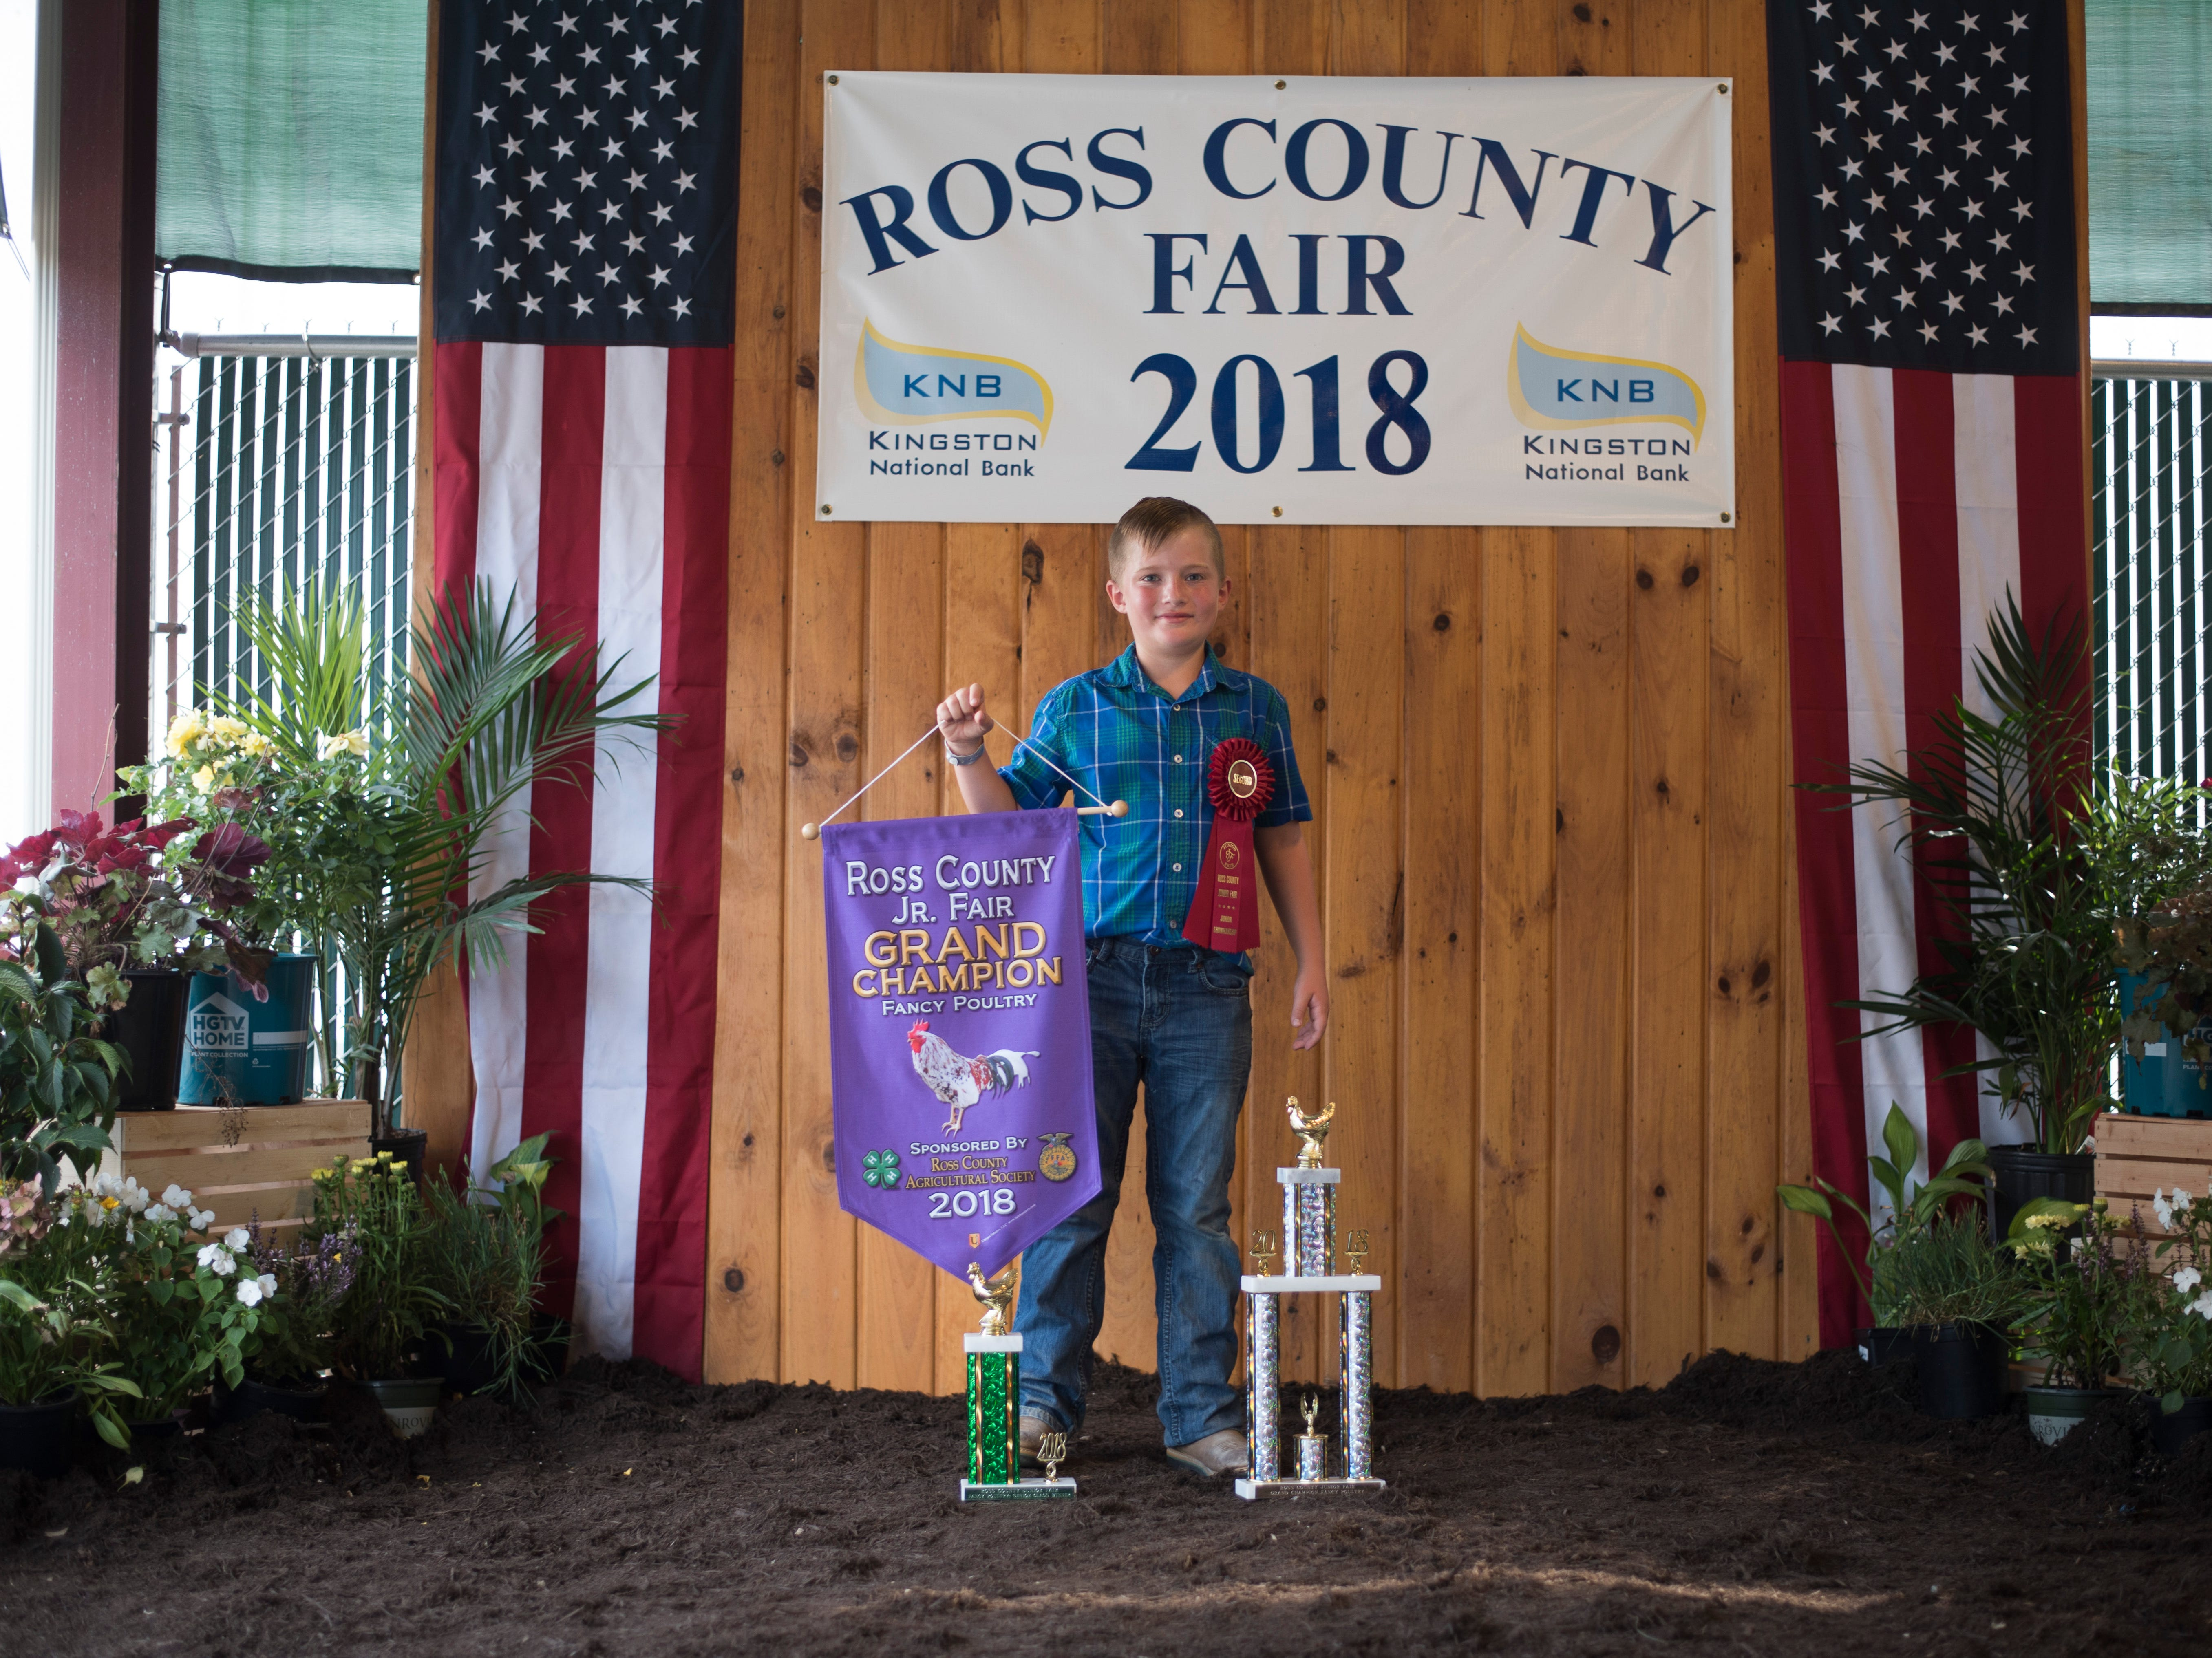 Highlights and portraits of the of the 2018 Jr. Fair Poultry Production and Fancy Poultry judging and showmanship contest. Miles Blackstone, 10, poses after winning Grand Champion for Fancy Poultry at the 2018 Ross County Fair on Monday, August 6.